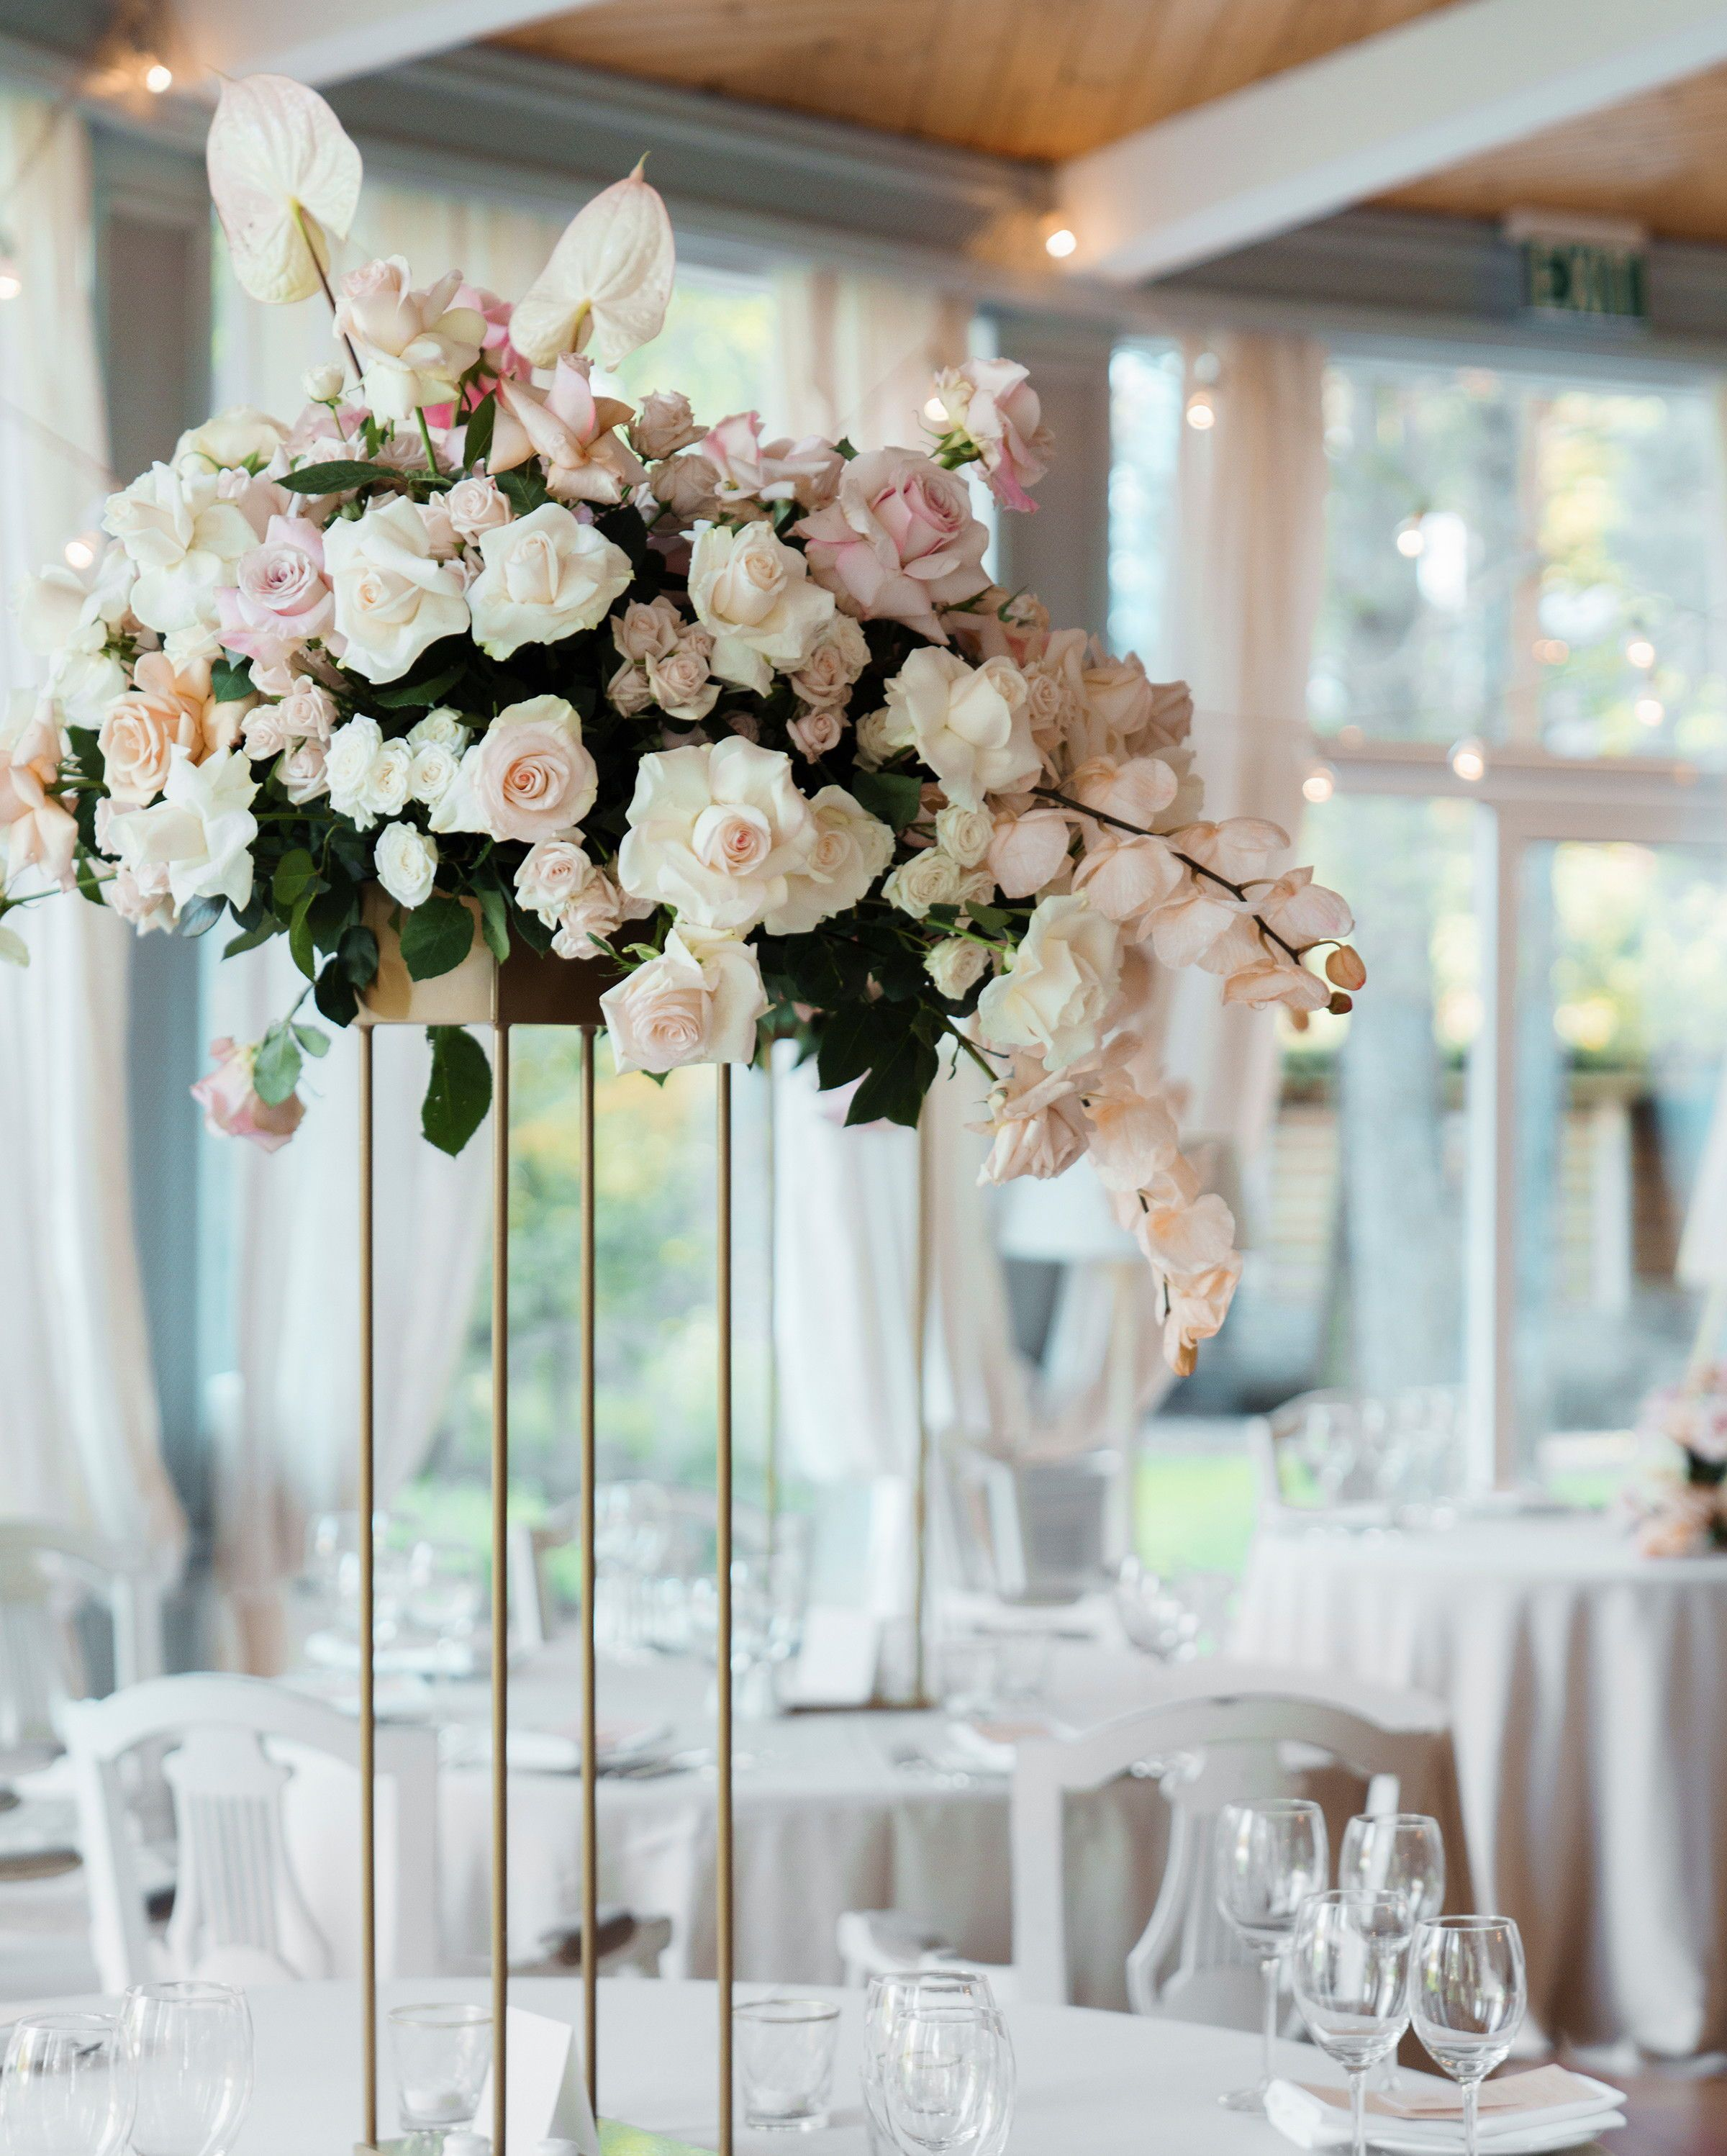 29 Tall Centerpieces That Will Take Your Reception Tables To New Heights Tall Wedding Centerpieces Wedding Reception Centerpieces Wedding Flower Arrangements